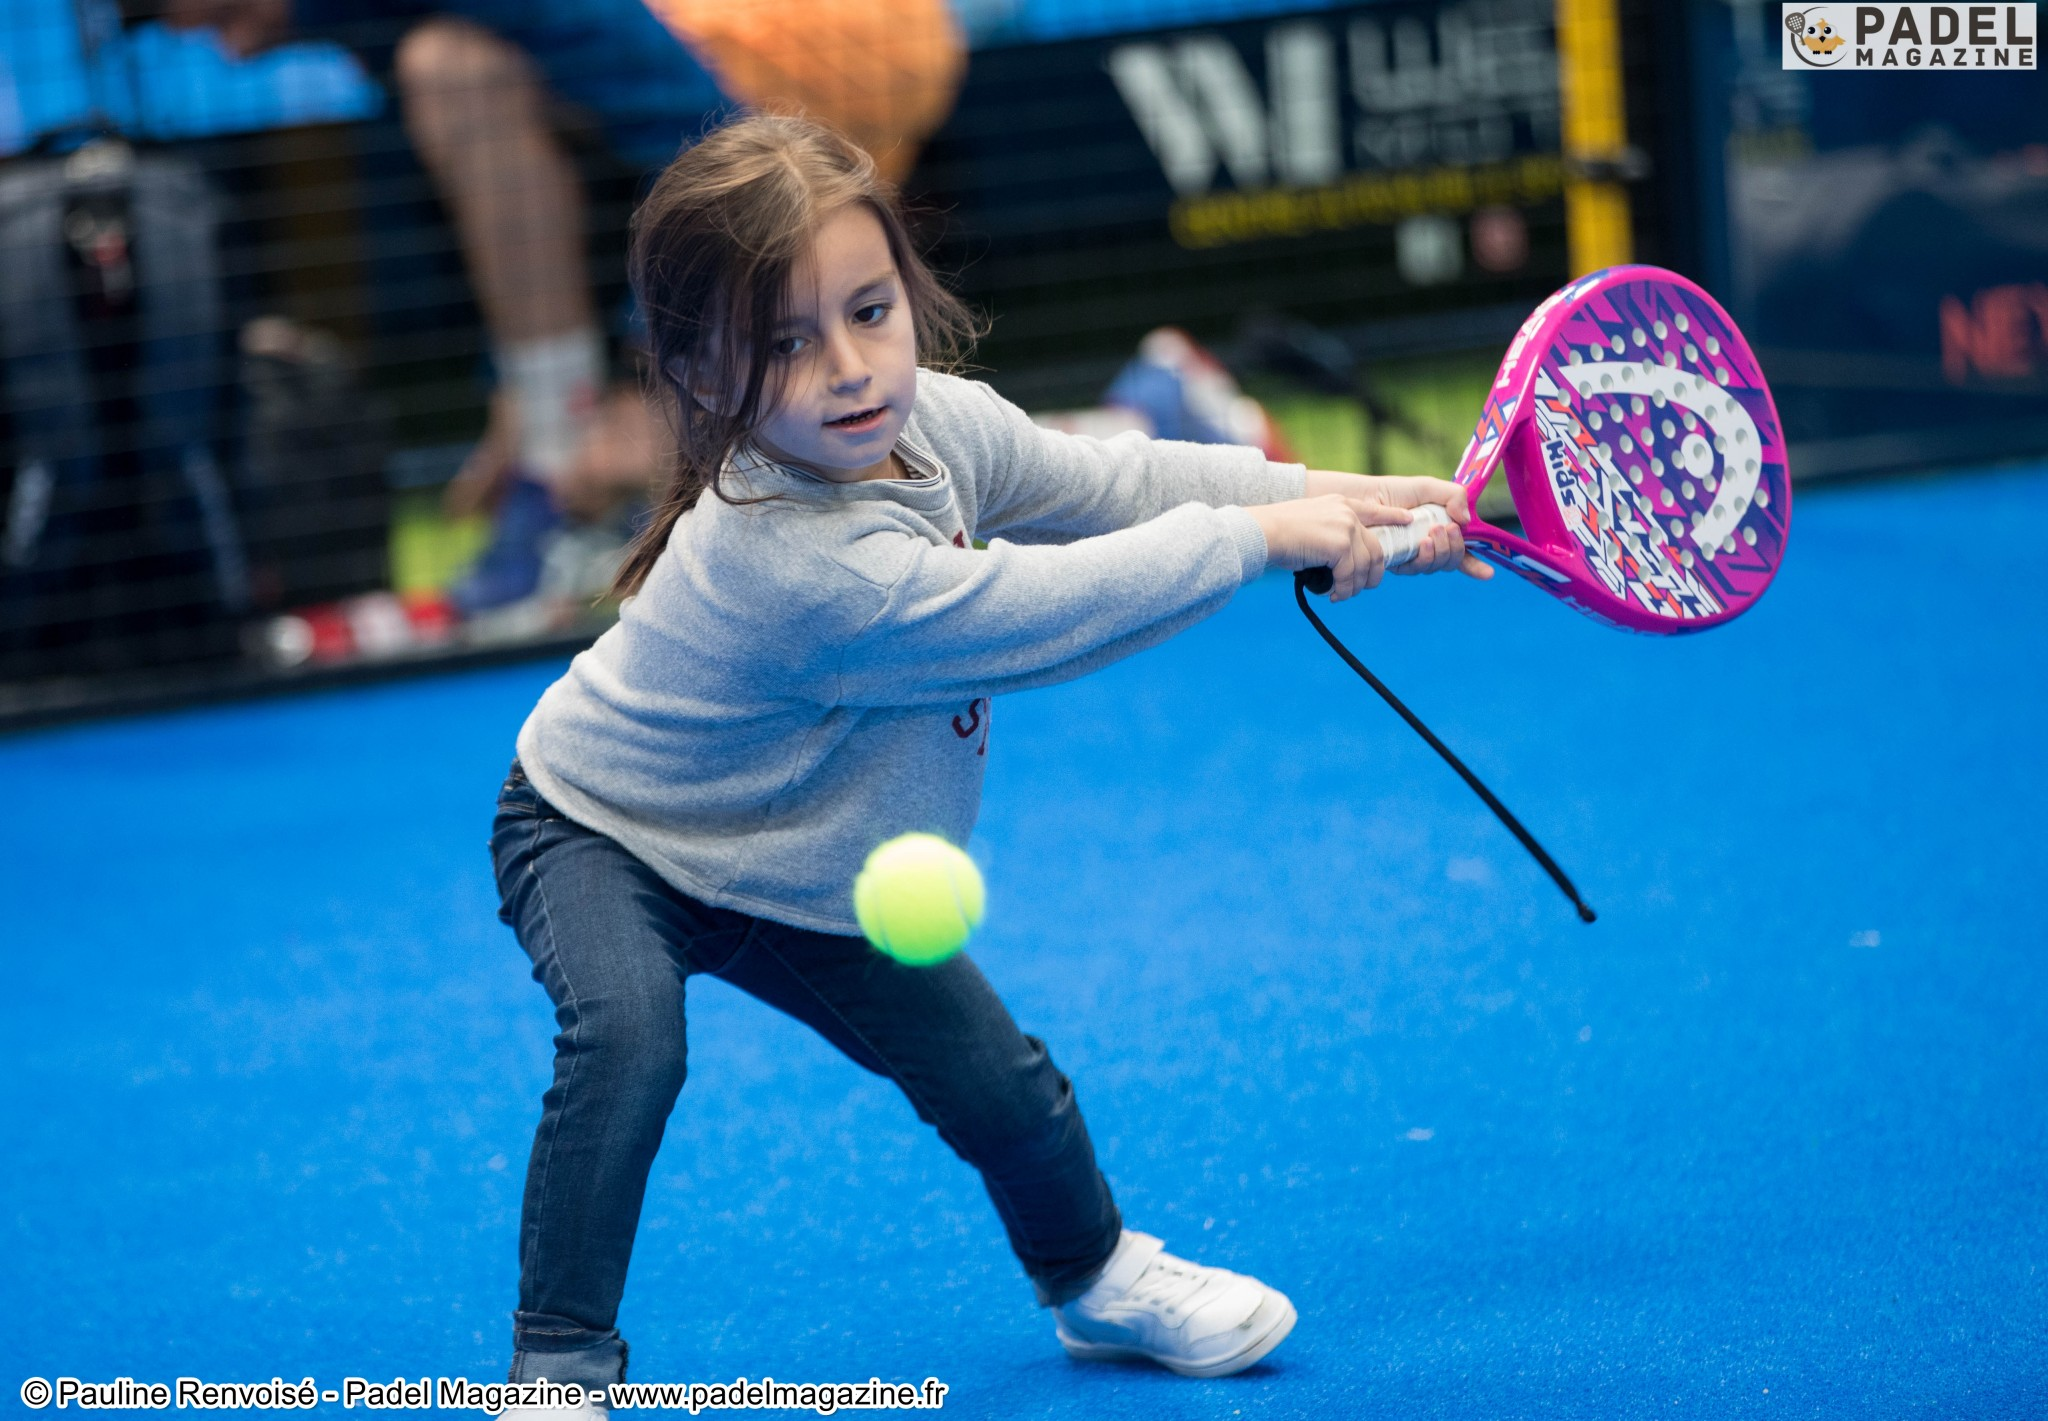 Le padel indoor only for minors on May 19?